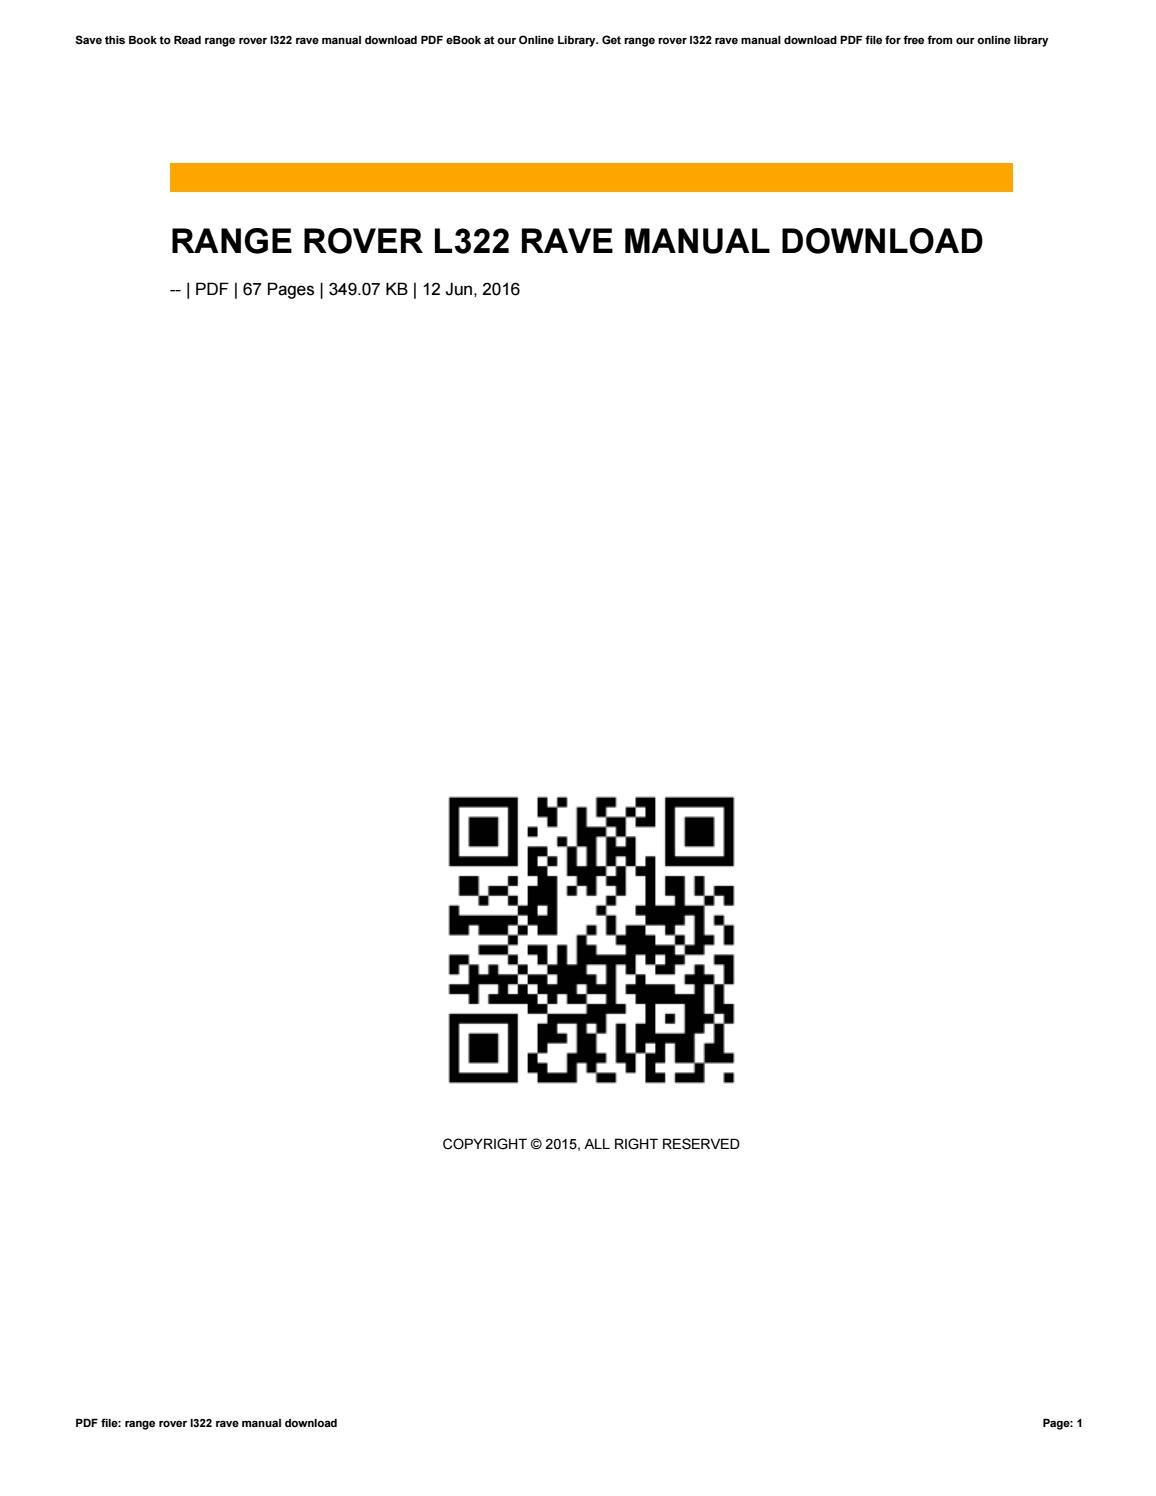 L322 manual array range rover l322 rave manual download by jklasdf64 issuu rh issuu fandeluxe Choice Image